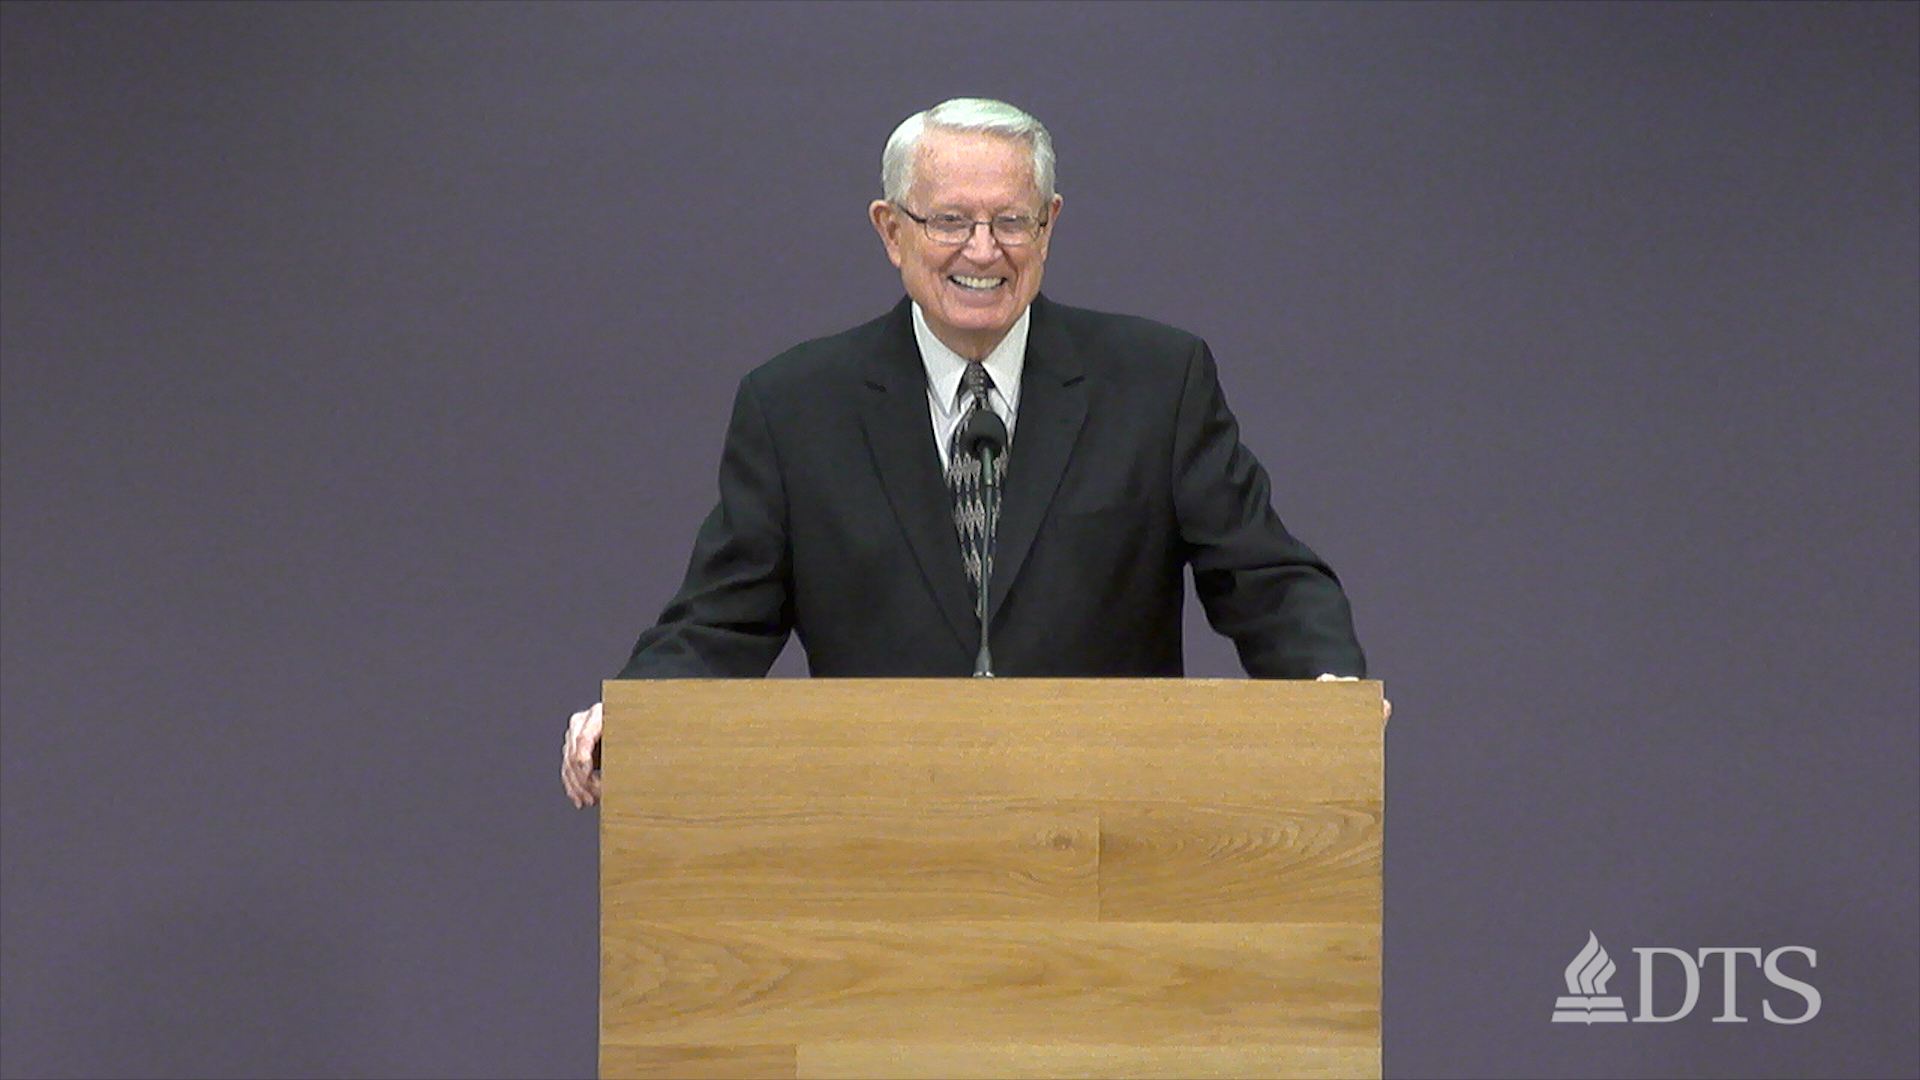 The Value of Vulnerability with Charles R. Swindoll